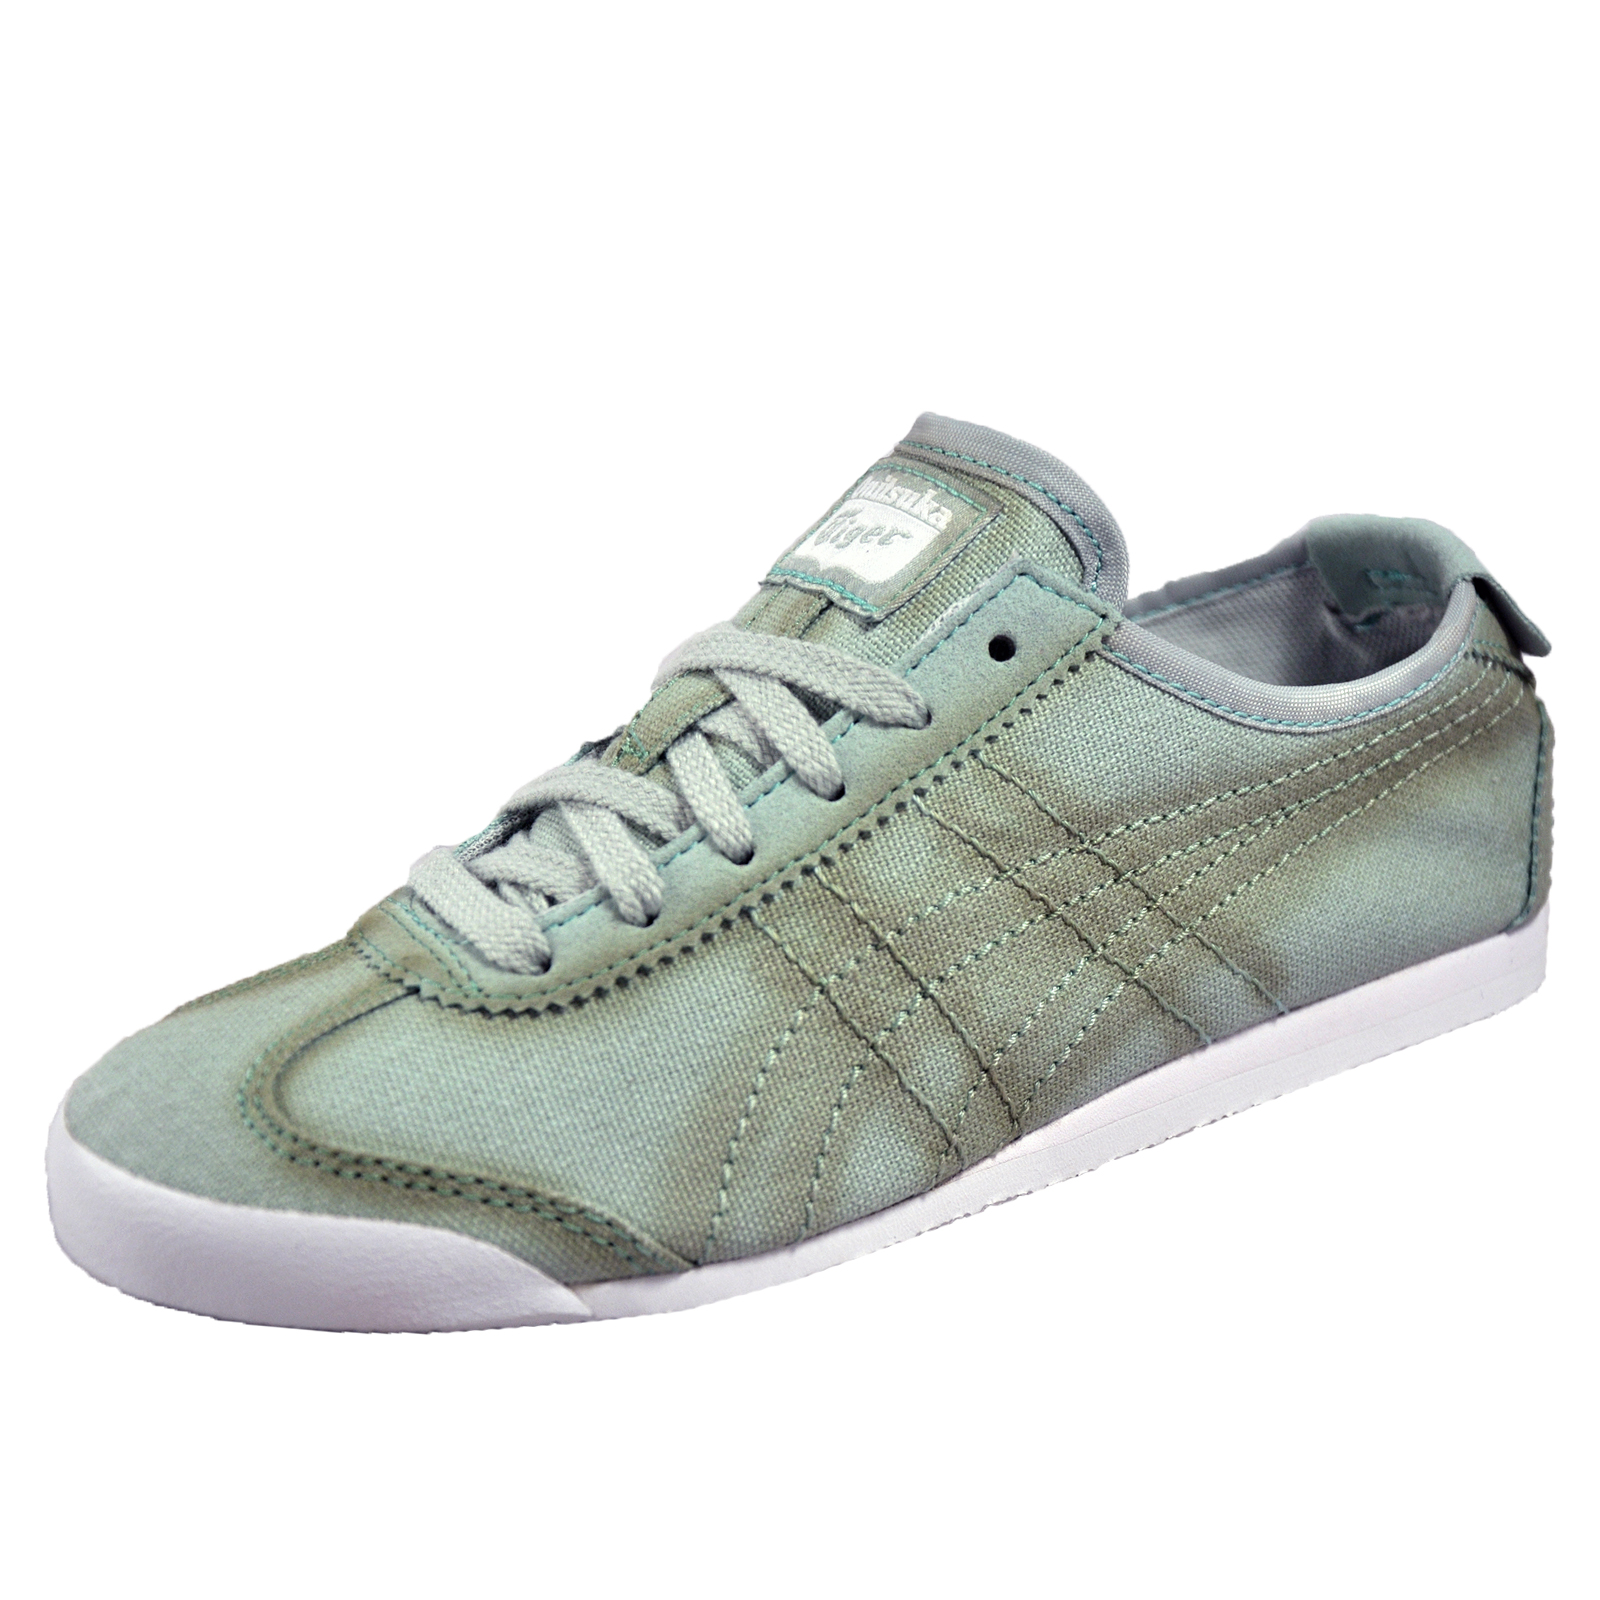 competitive price e53d0 3d2ce Details about Onitsuka Tiger Mexico 66 Womens Classic Canvas Casual Retro  Trainers Smoke Green